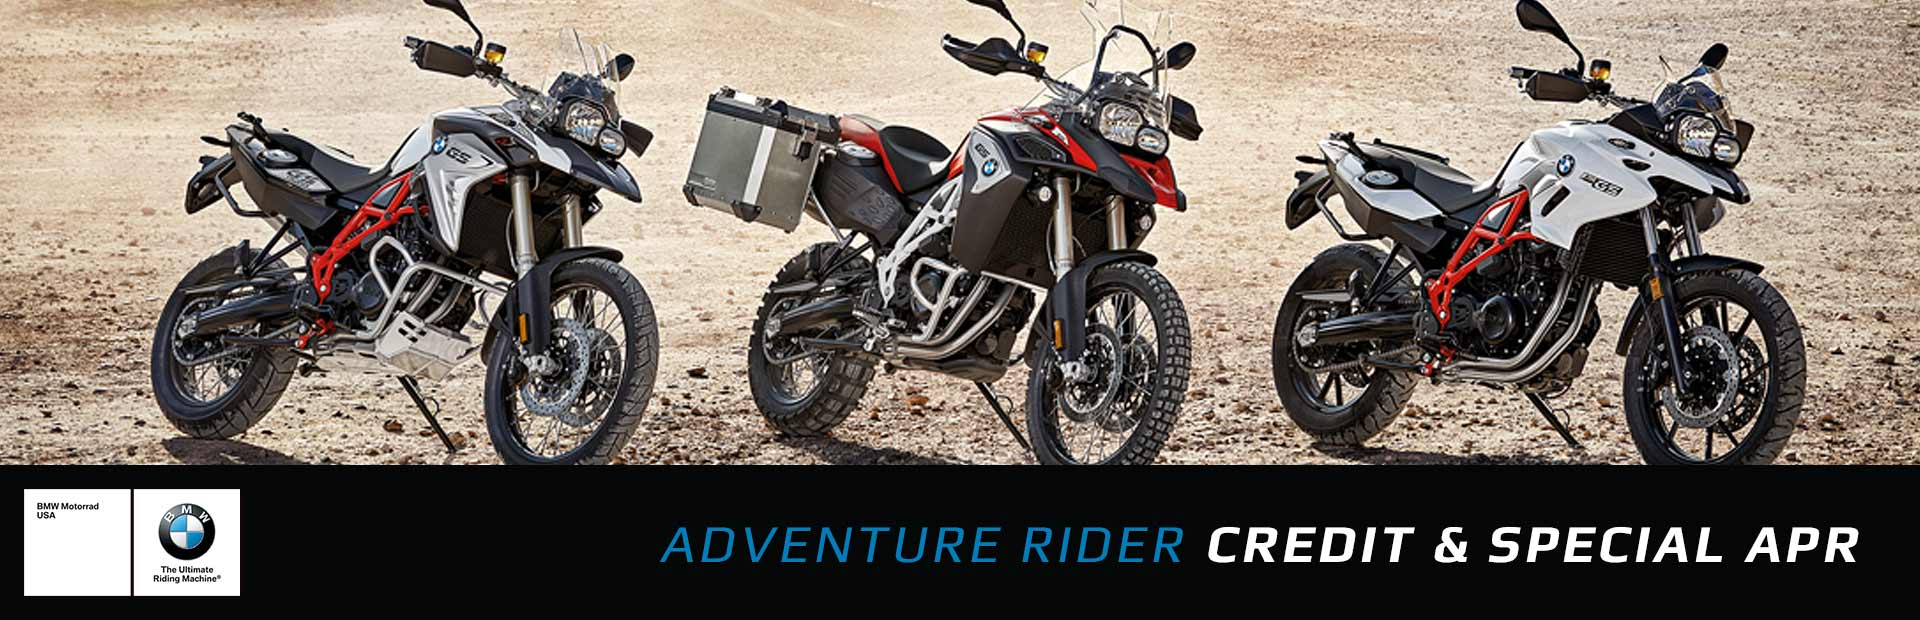 BMW: Adventure Rider Credit and Special APR